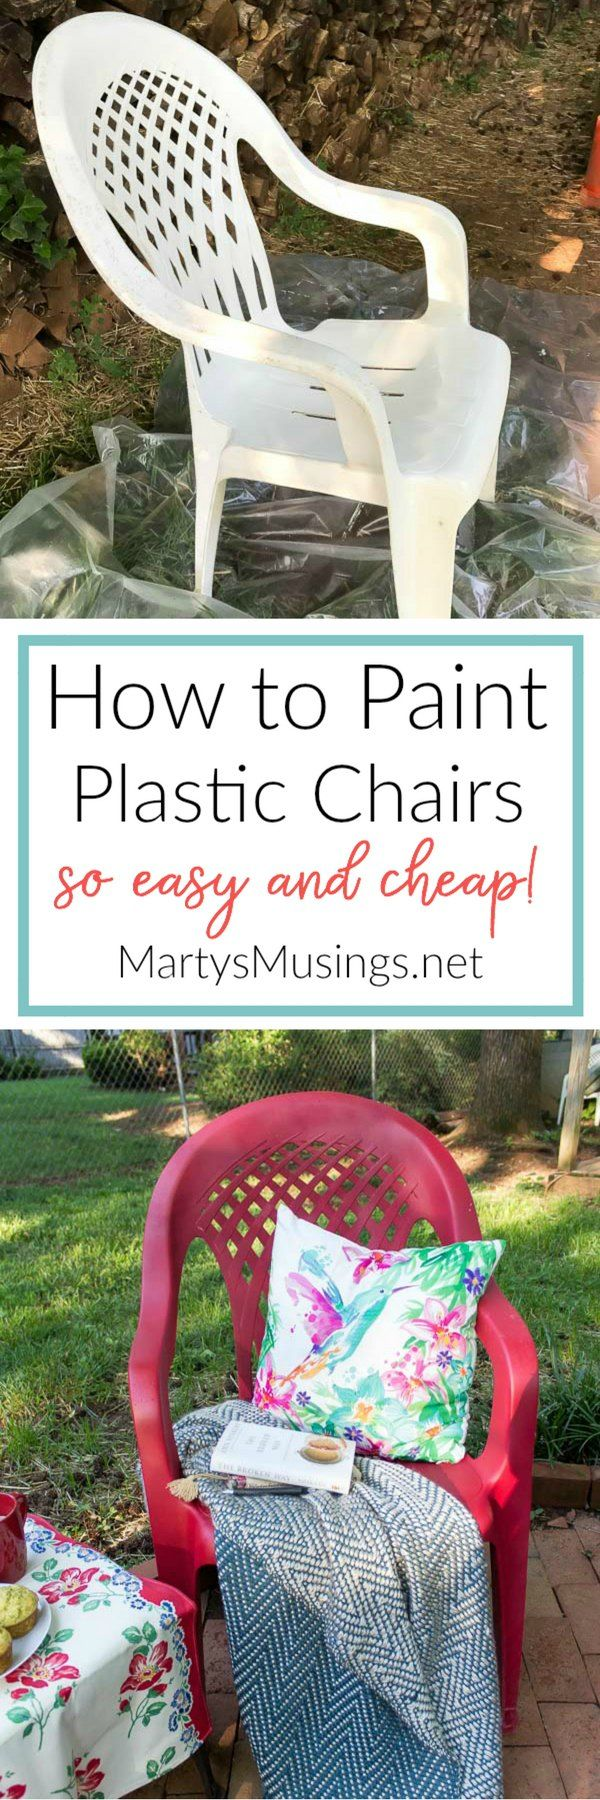 How to Spray Paint Plastic Chairs: An Easy Makeover! #spraypainting